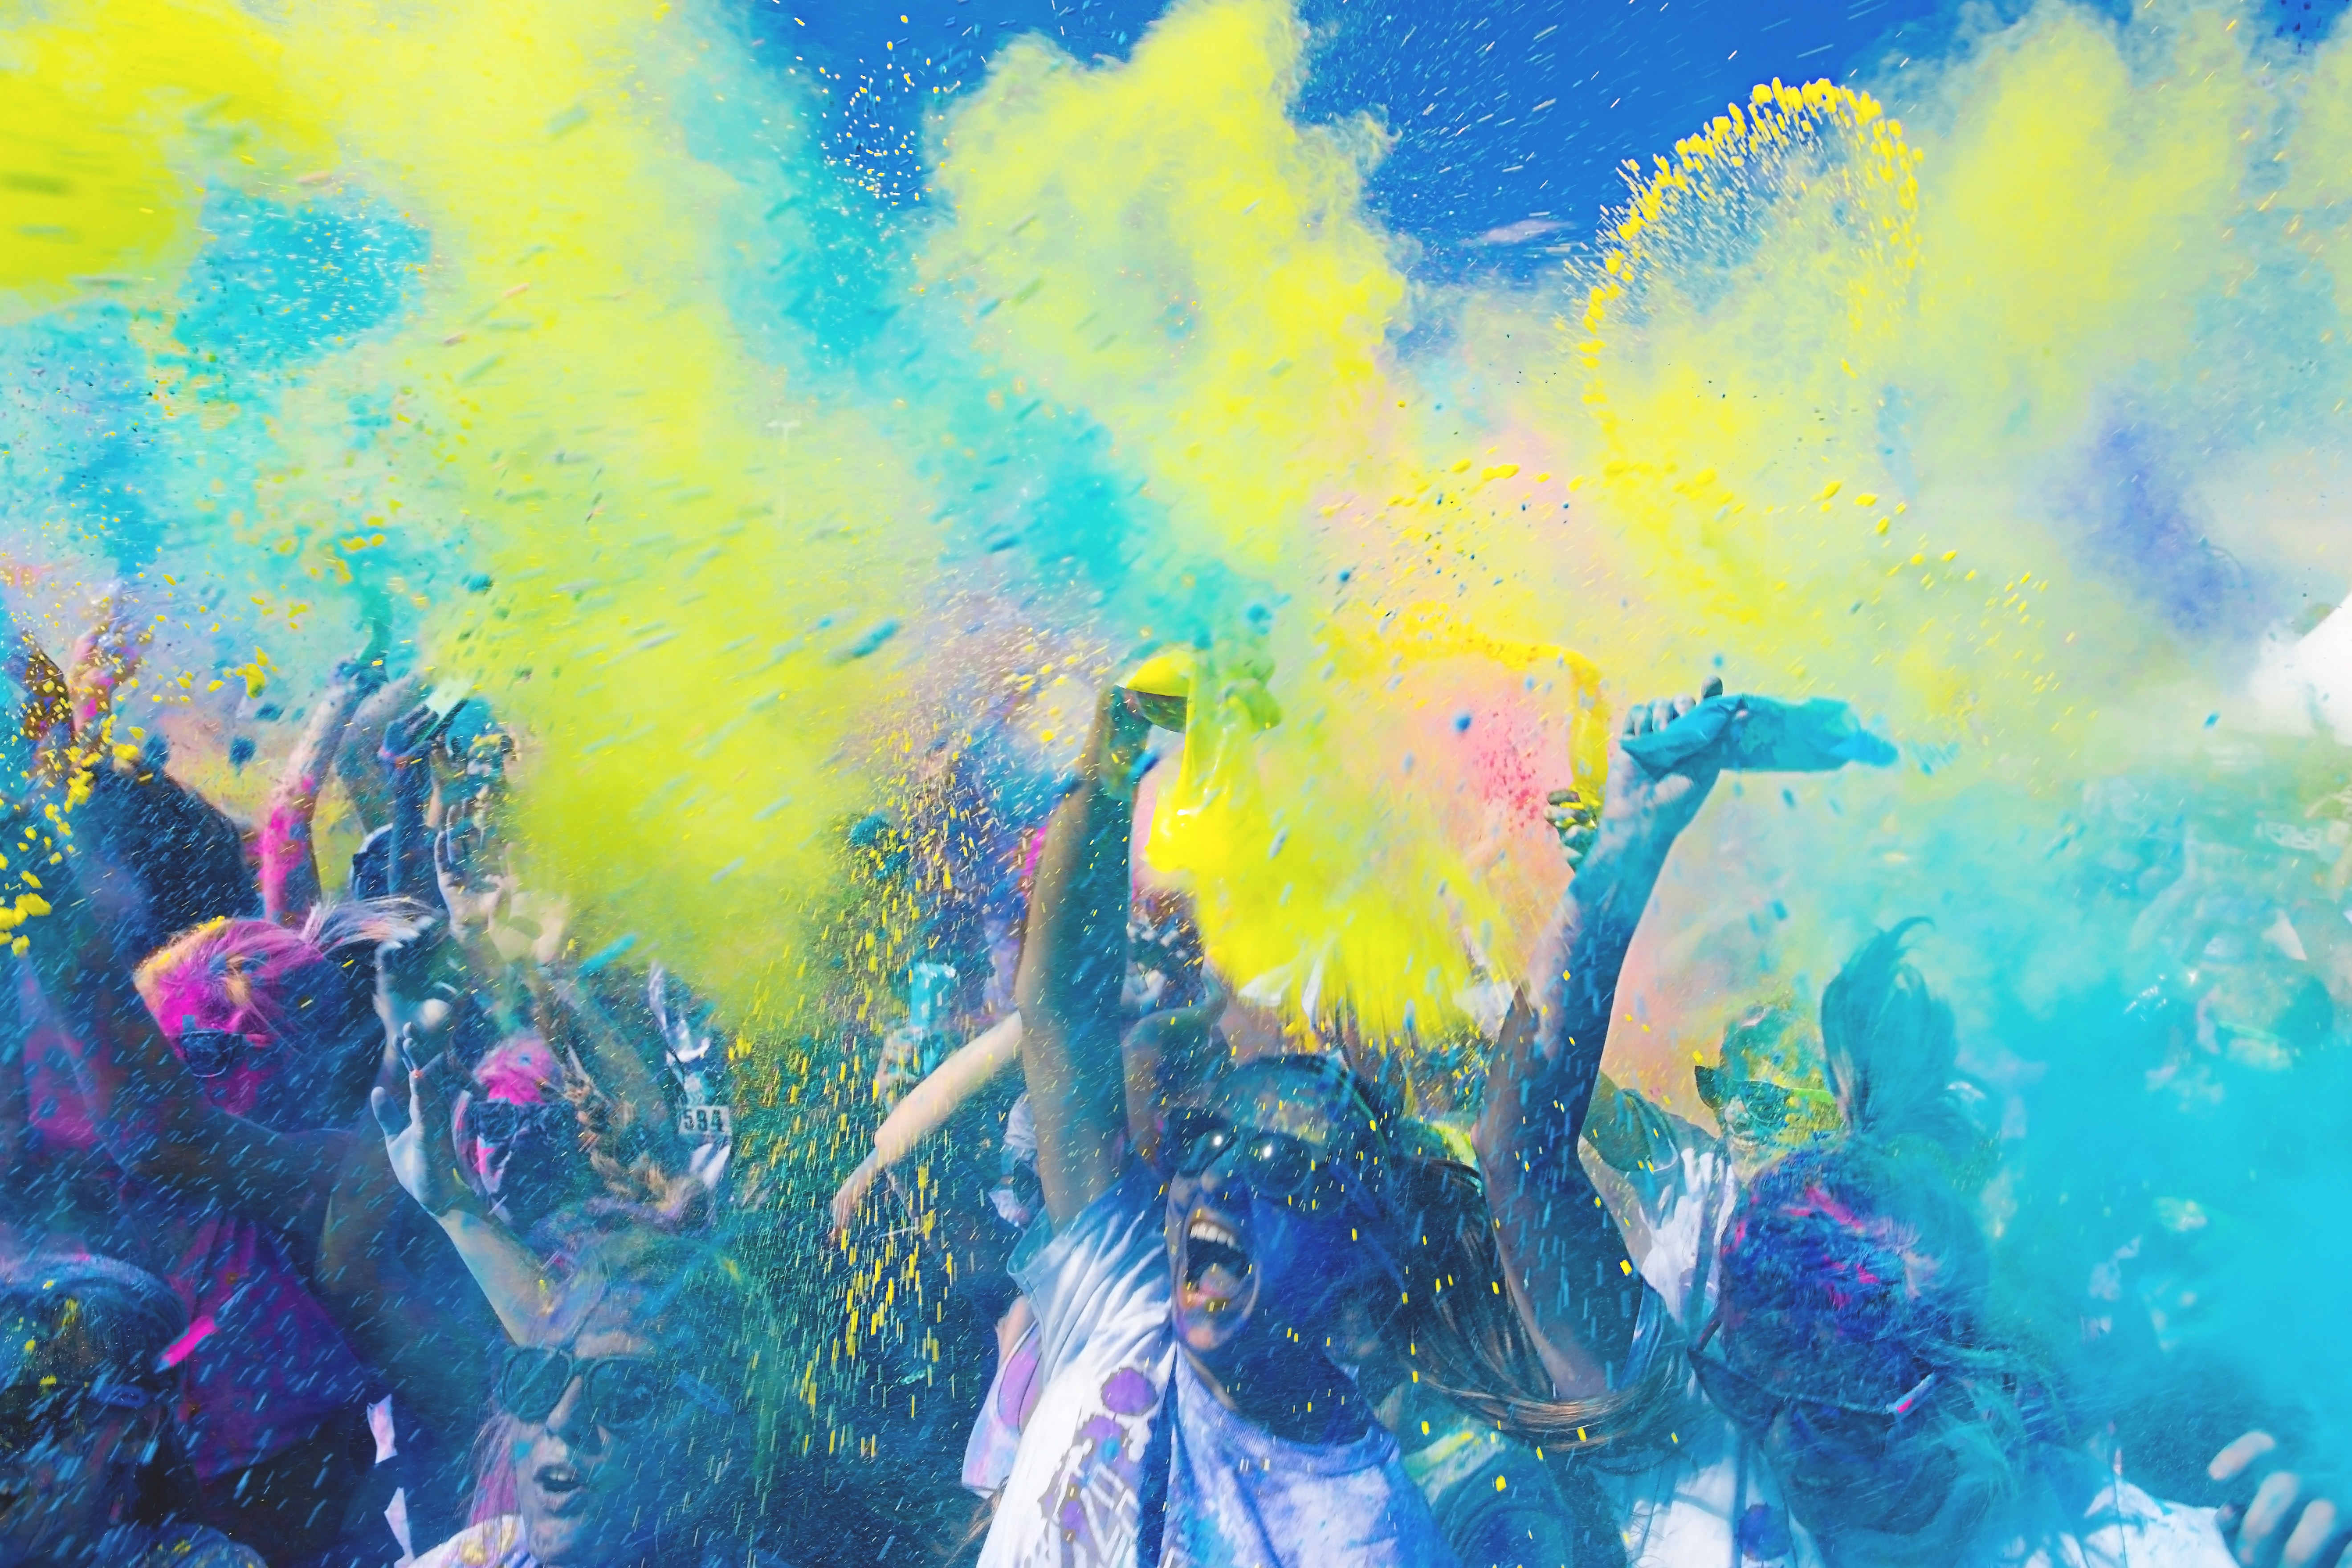 People covered in cloud of colour paint